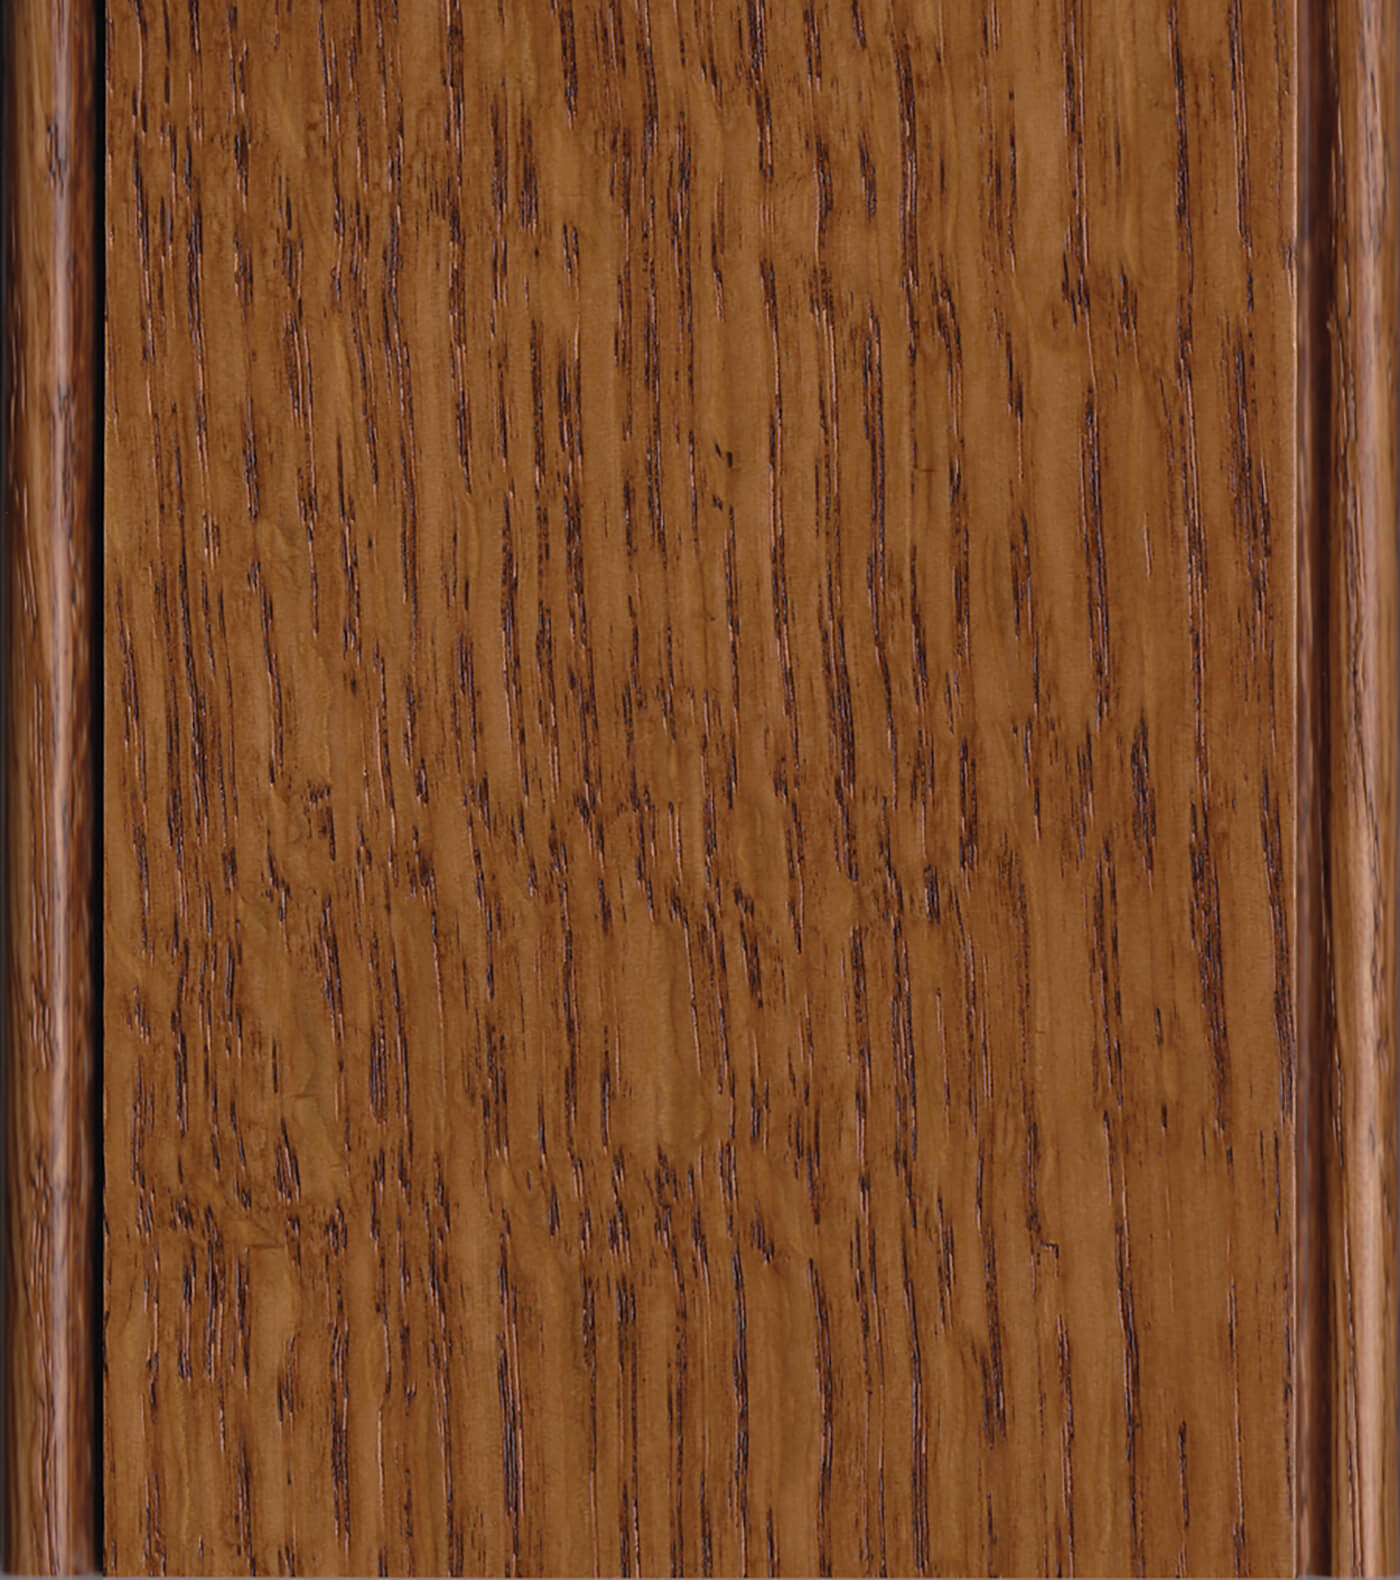 Clove Stain on Red Oak or Quarter-Sawn Red Oak